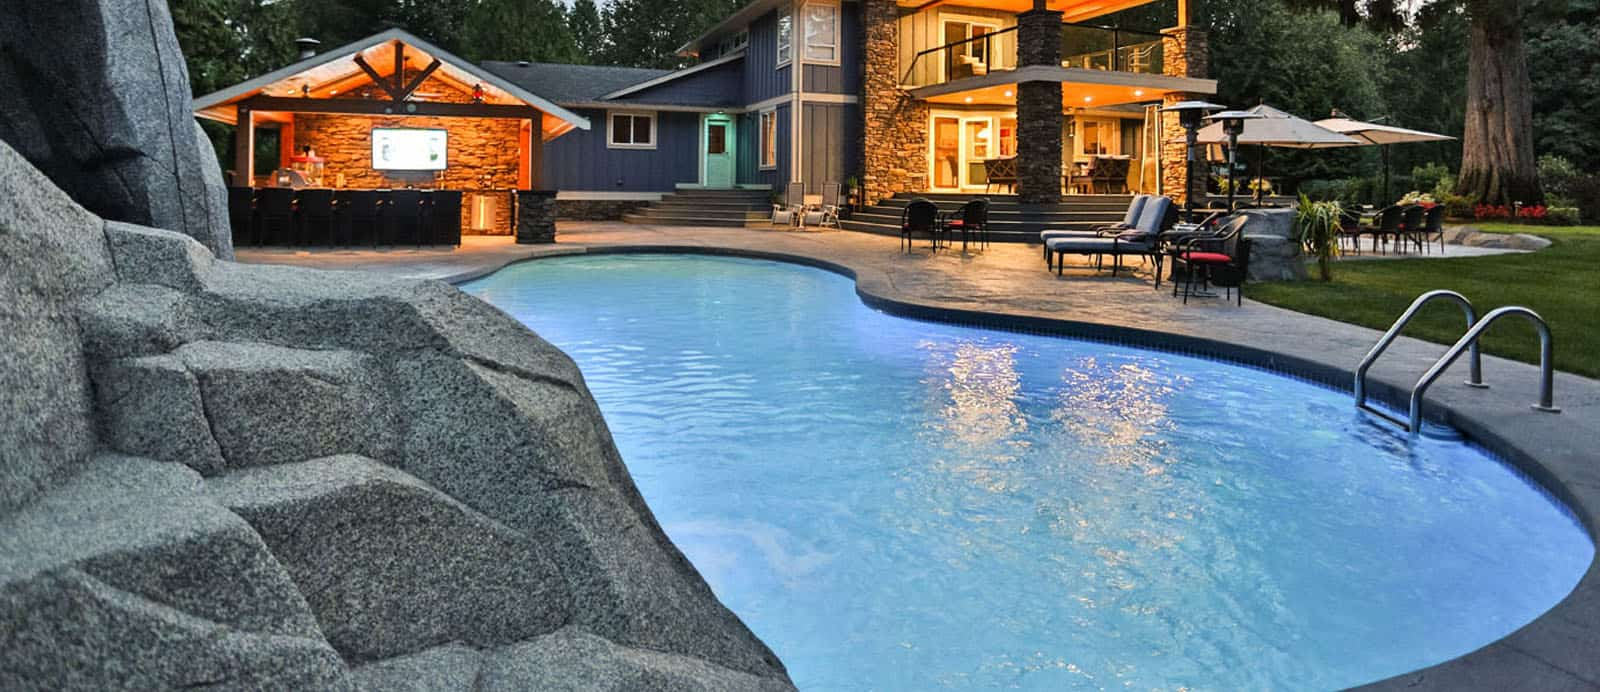 Outdoor Pool Renovations